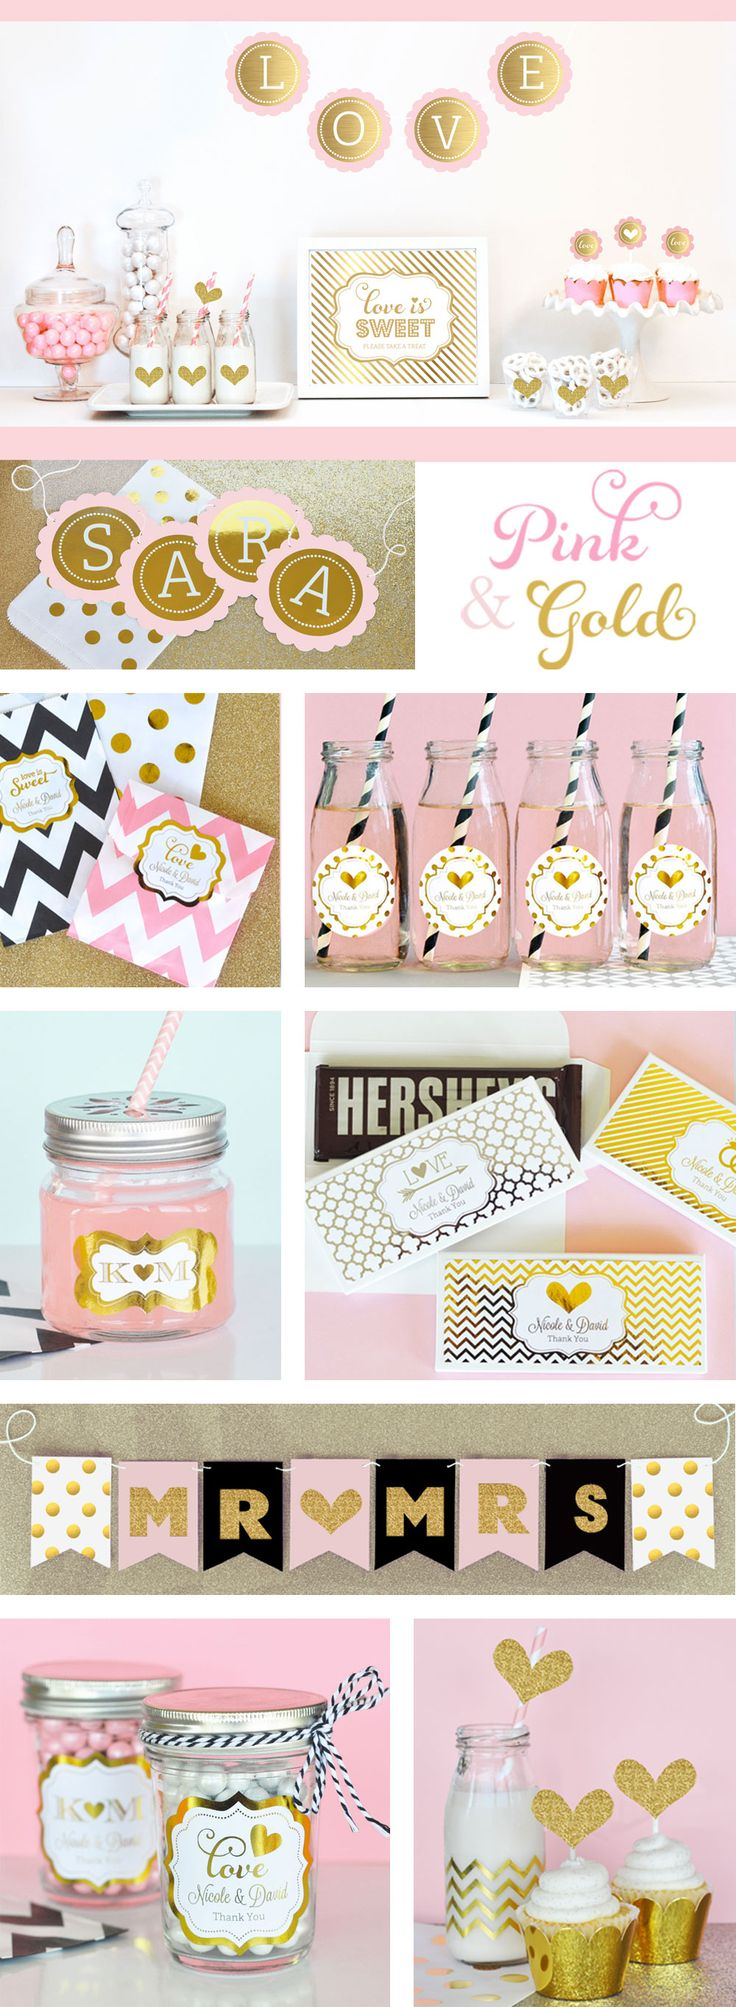 146 best pink and gold wedding and bridal showers images on ...